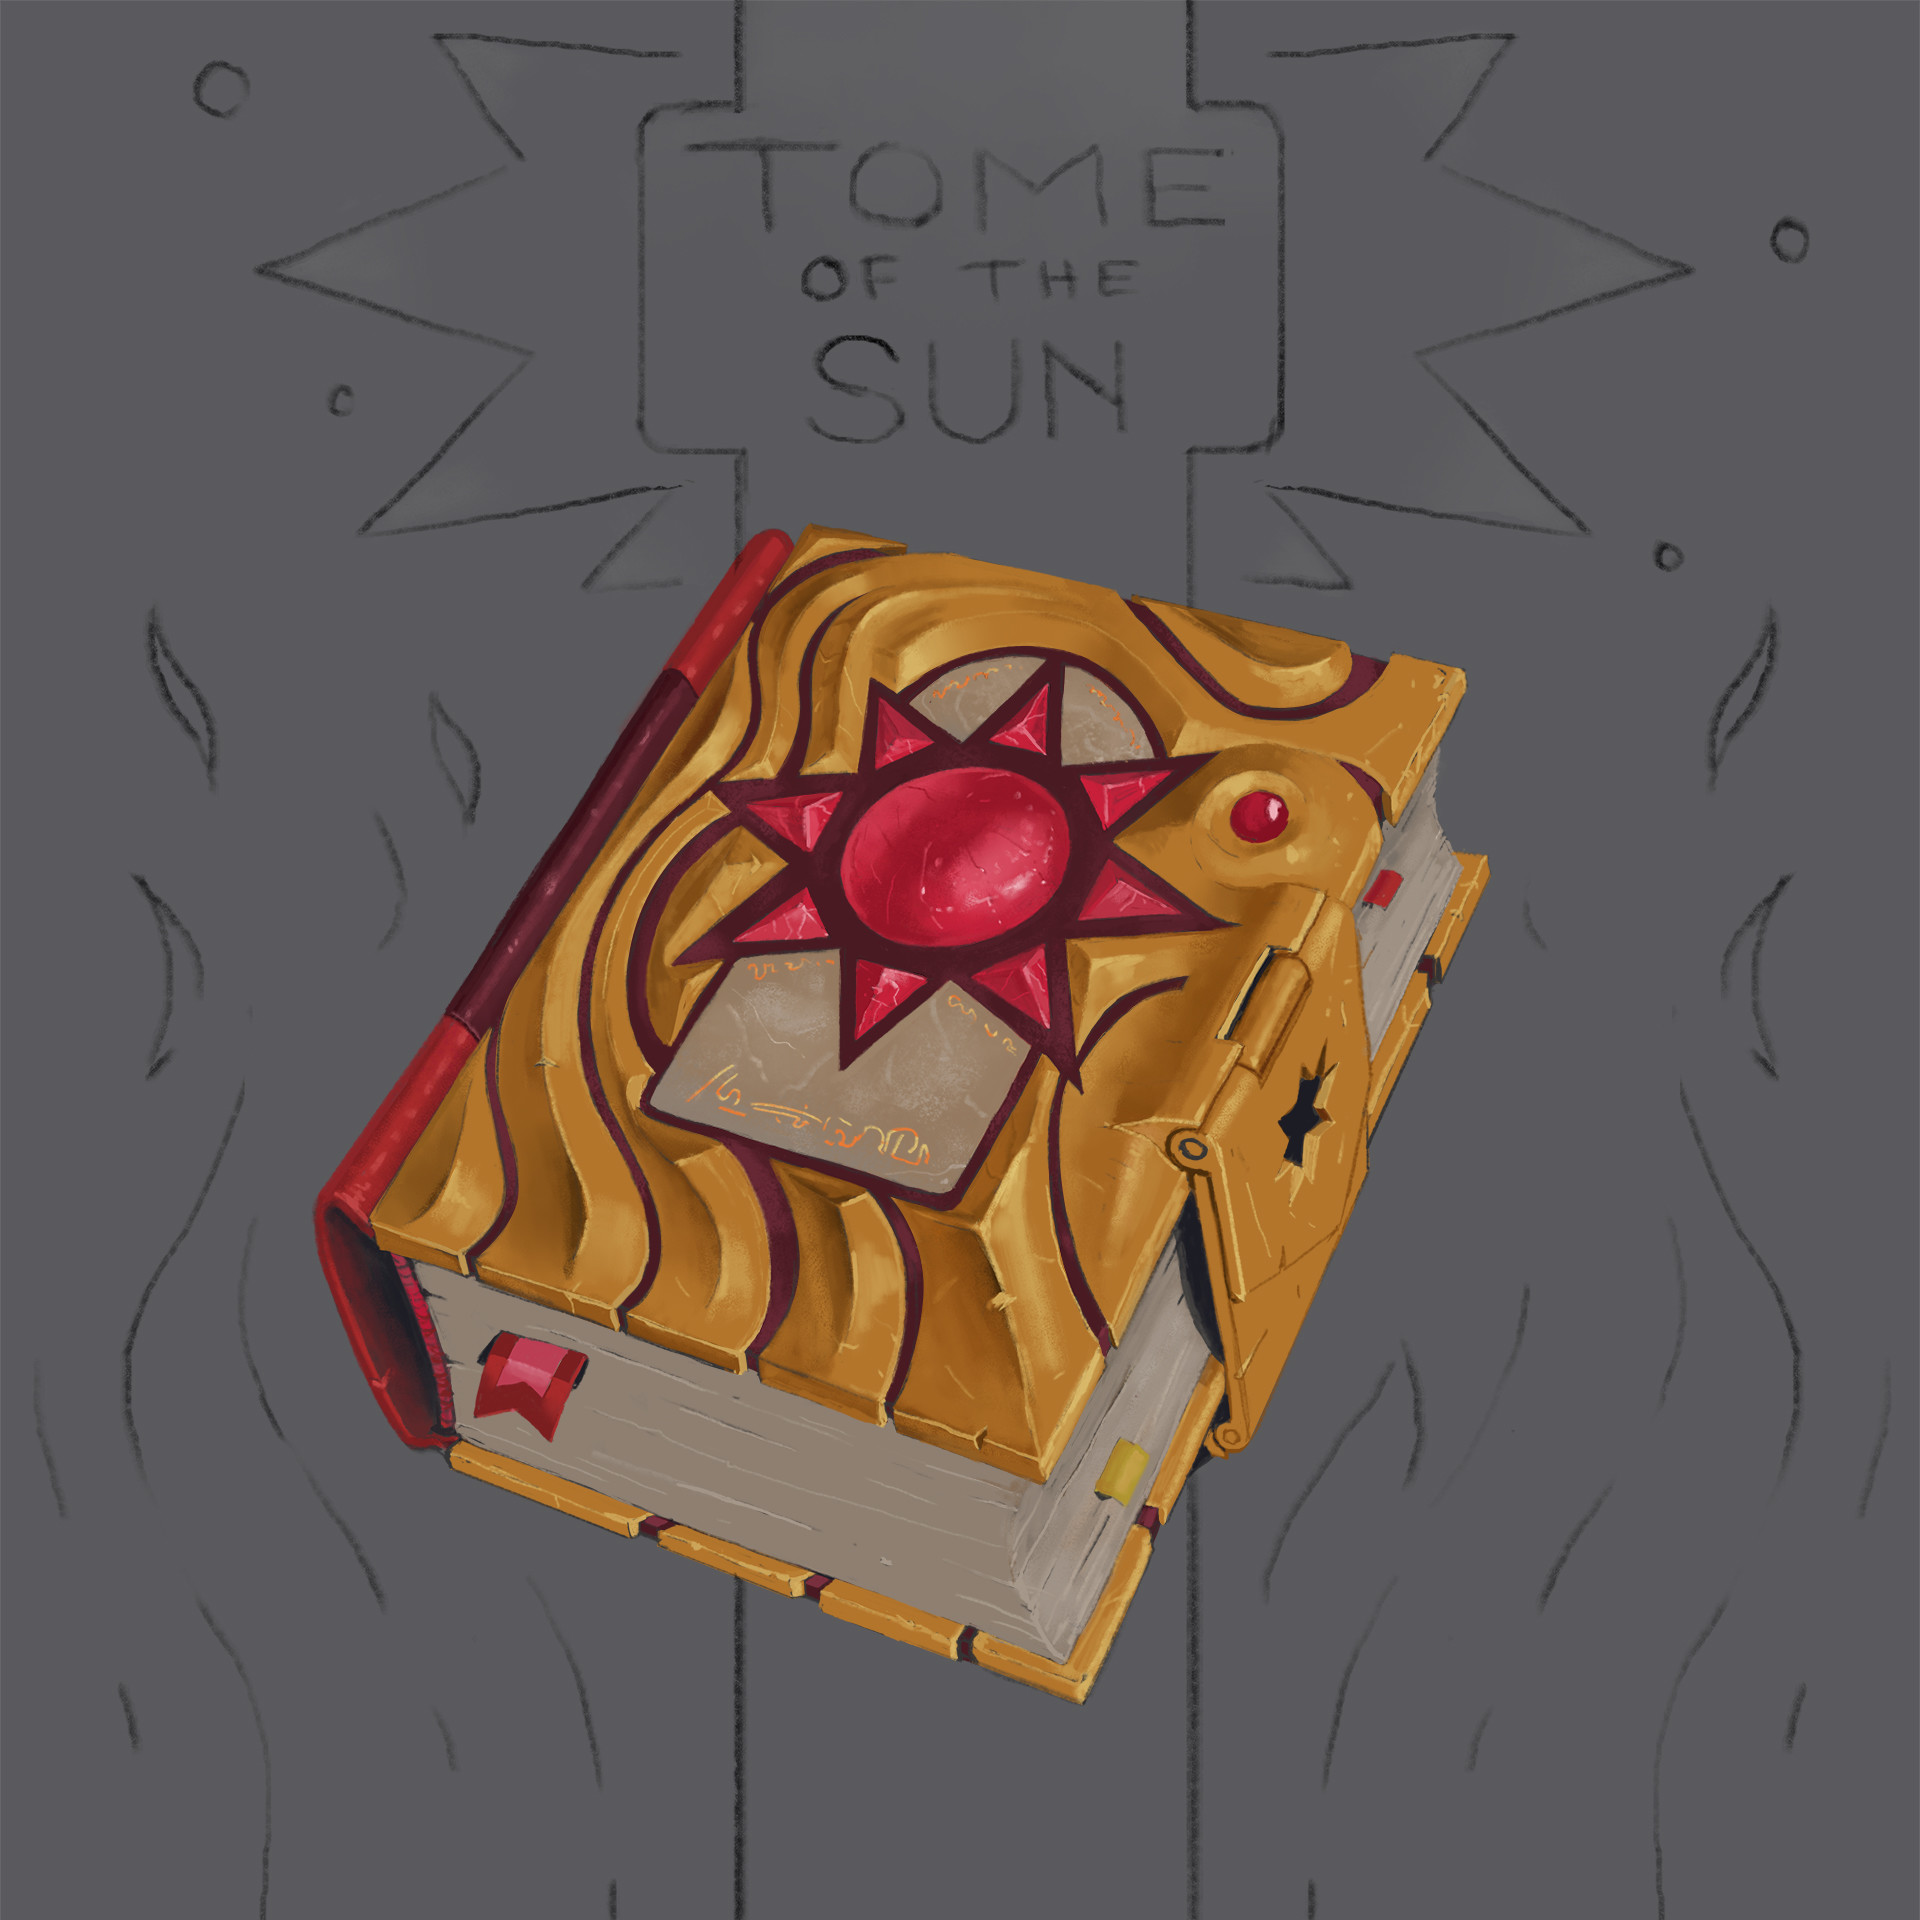 Michael loos tome of the sun illustration